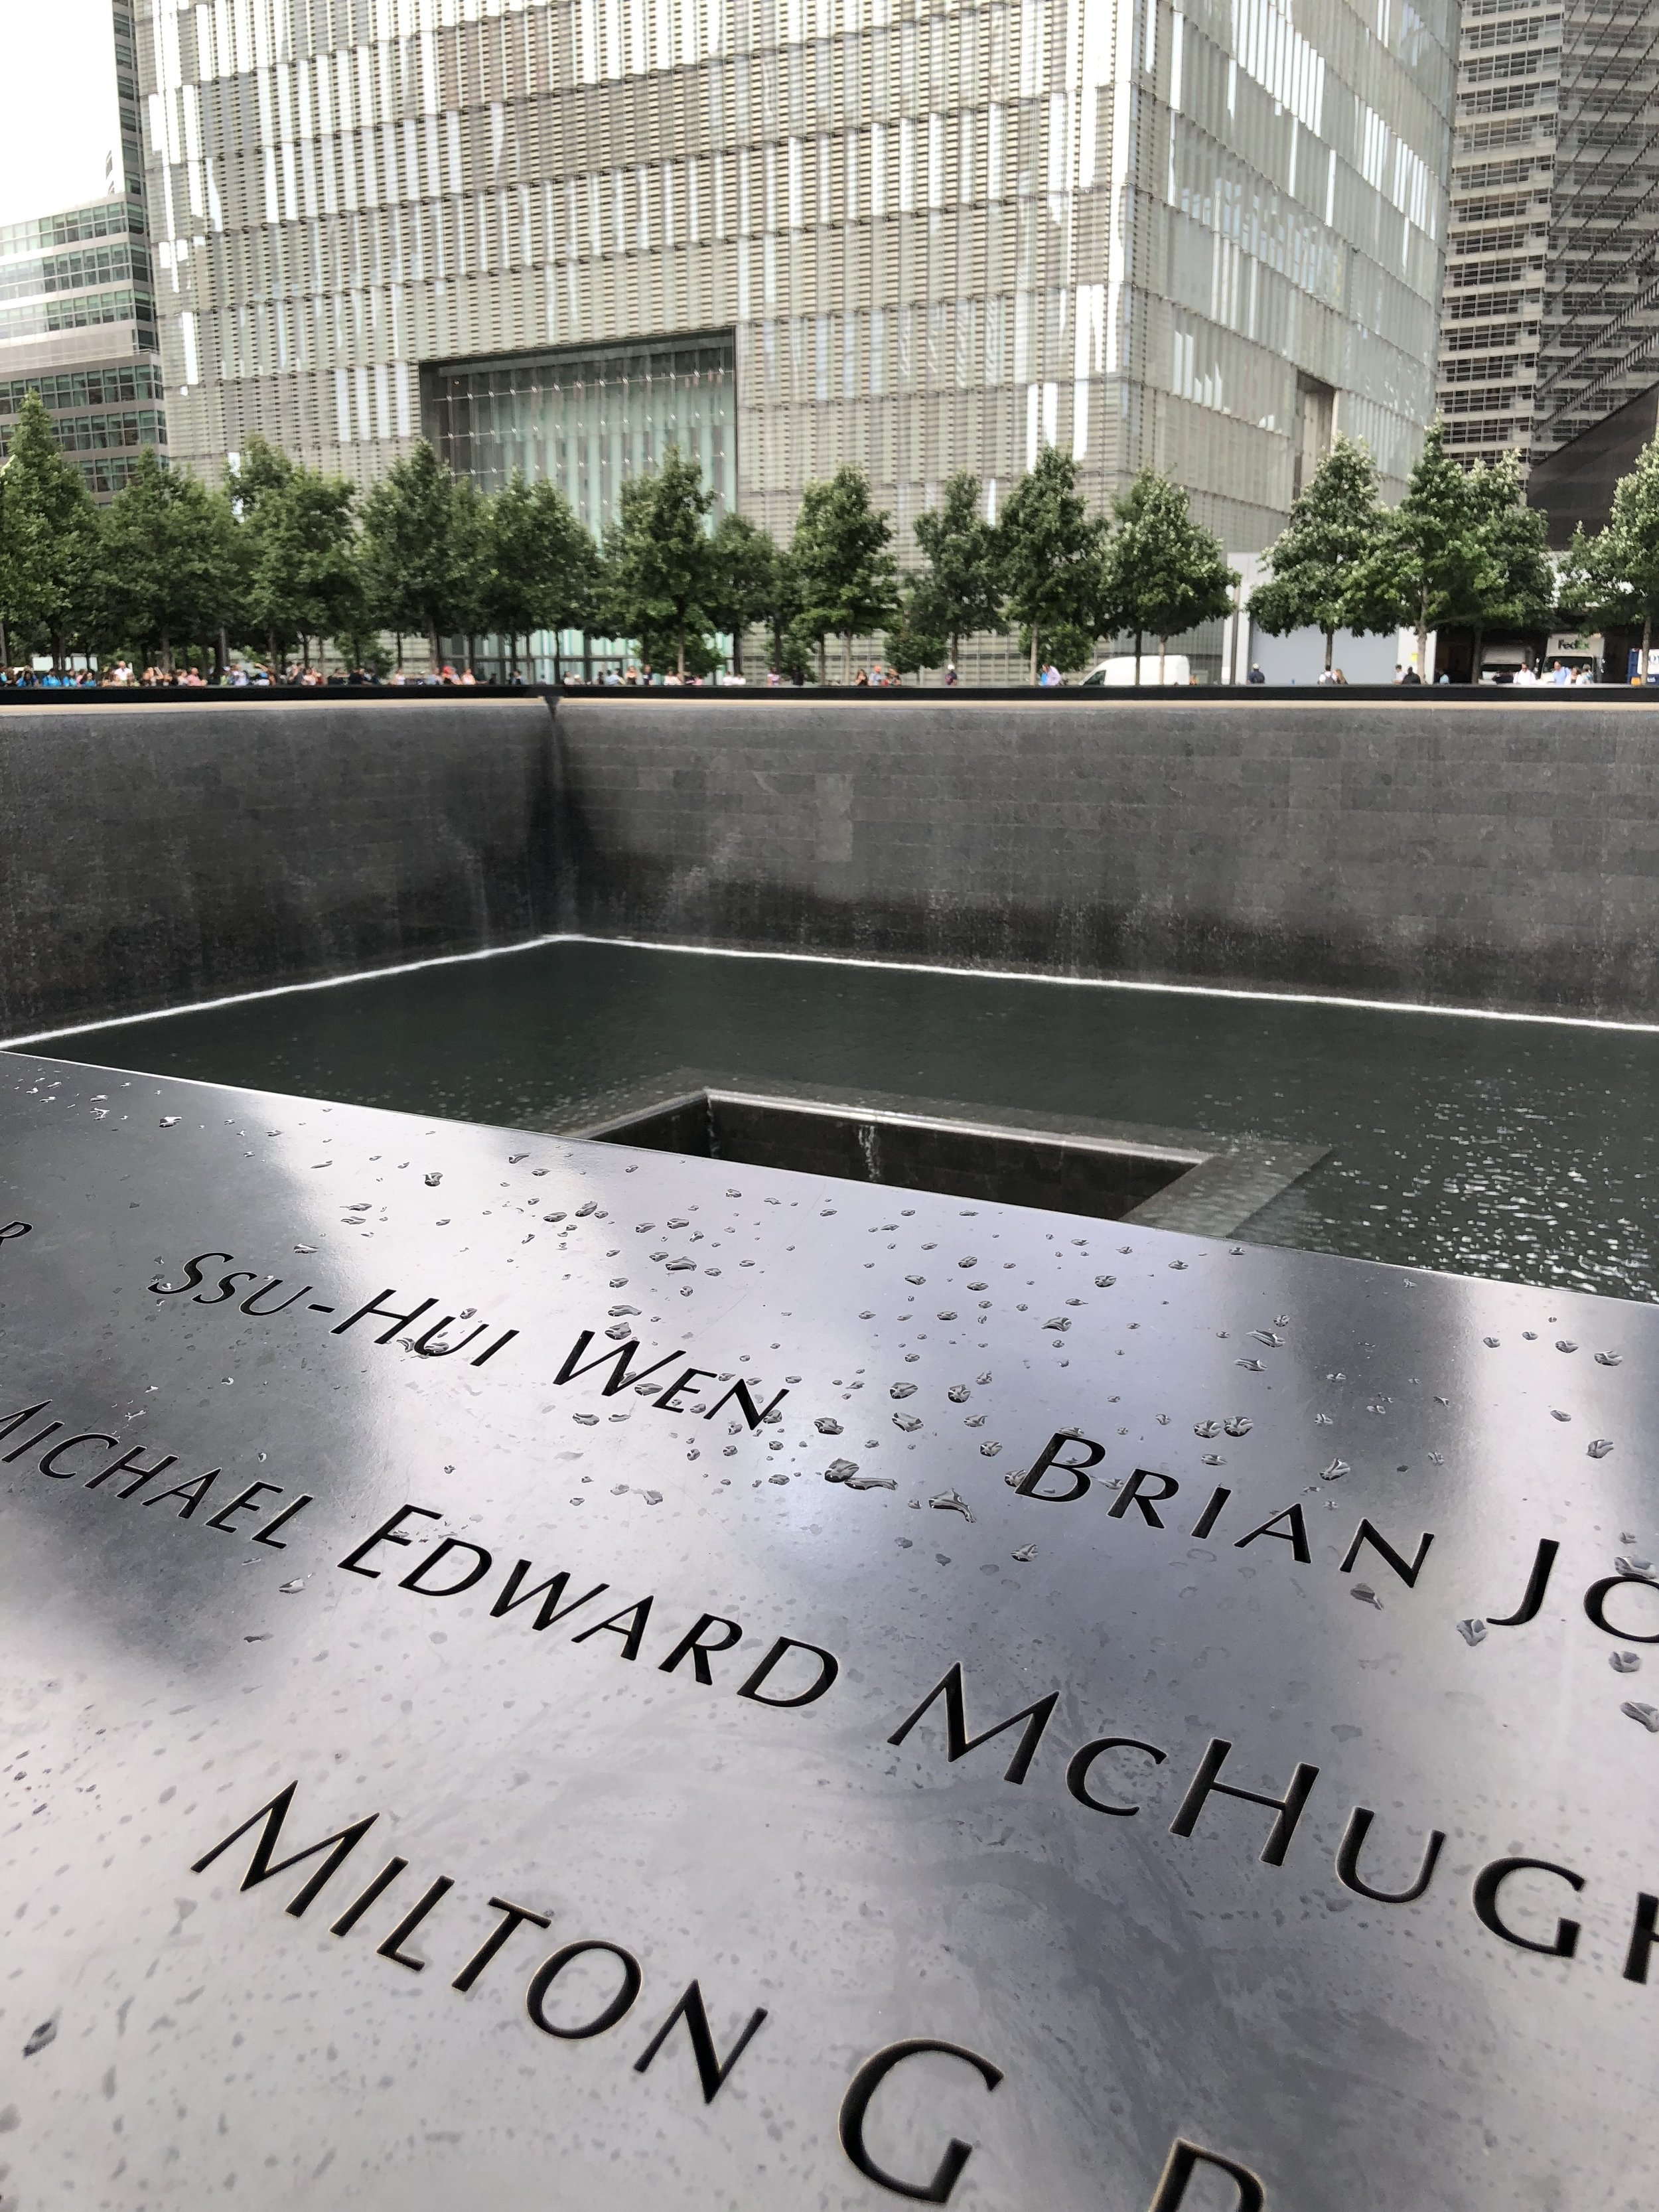 Image taken by Samantha McHenry, 9/11 Memorial, 2018.